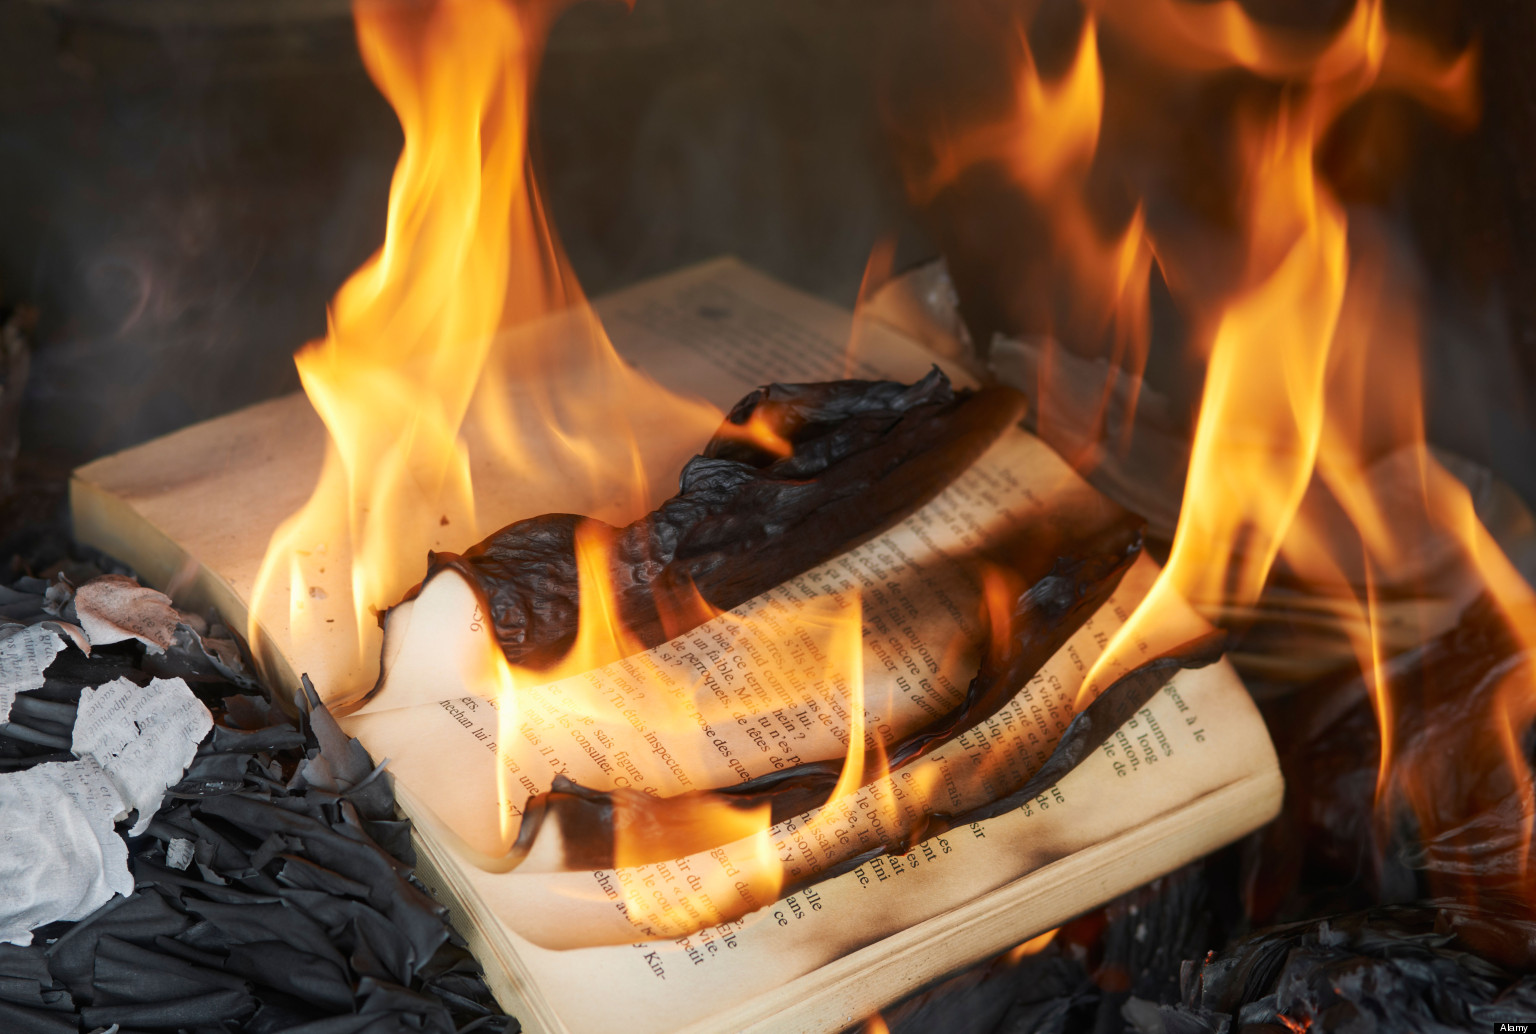 11 Book Burning Stories That Will Break Your Heart | HuffPost